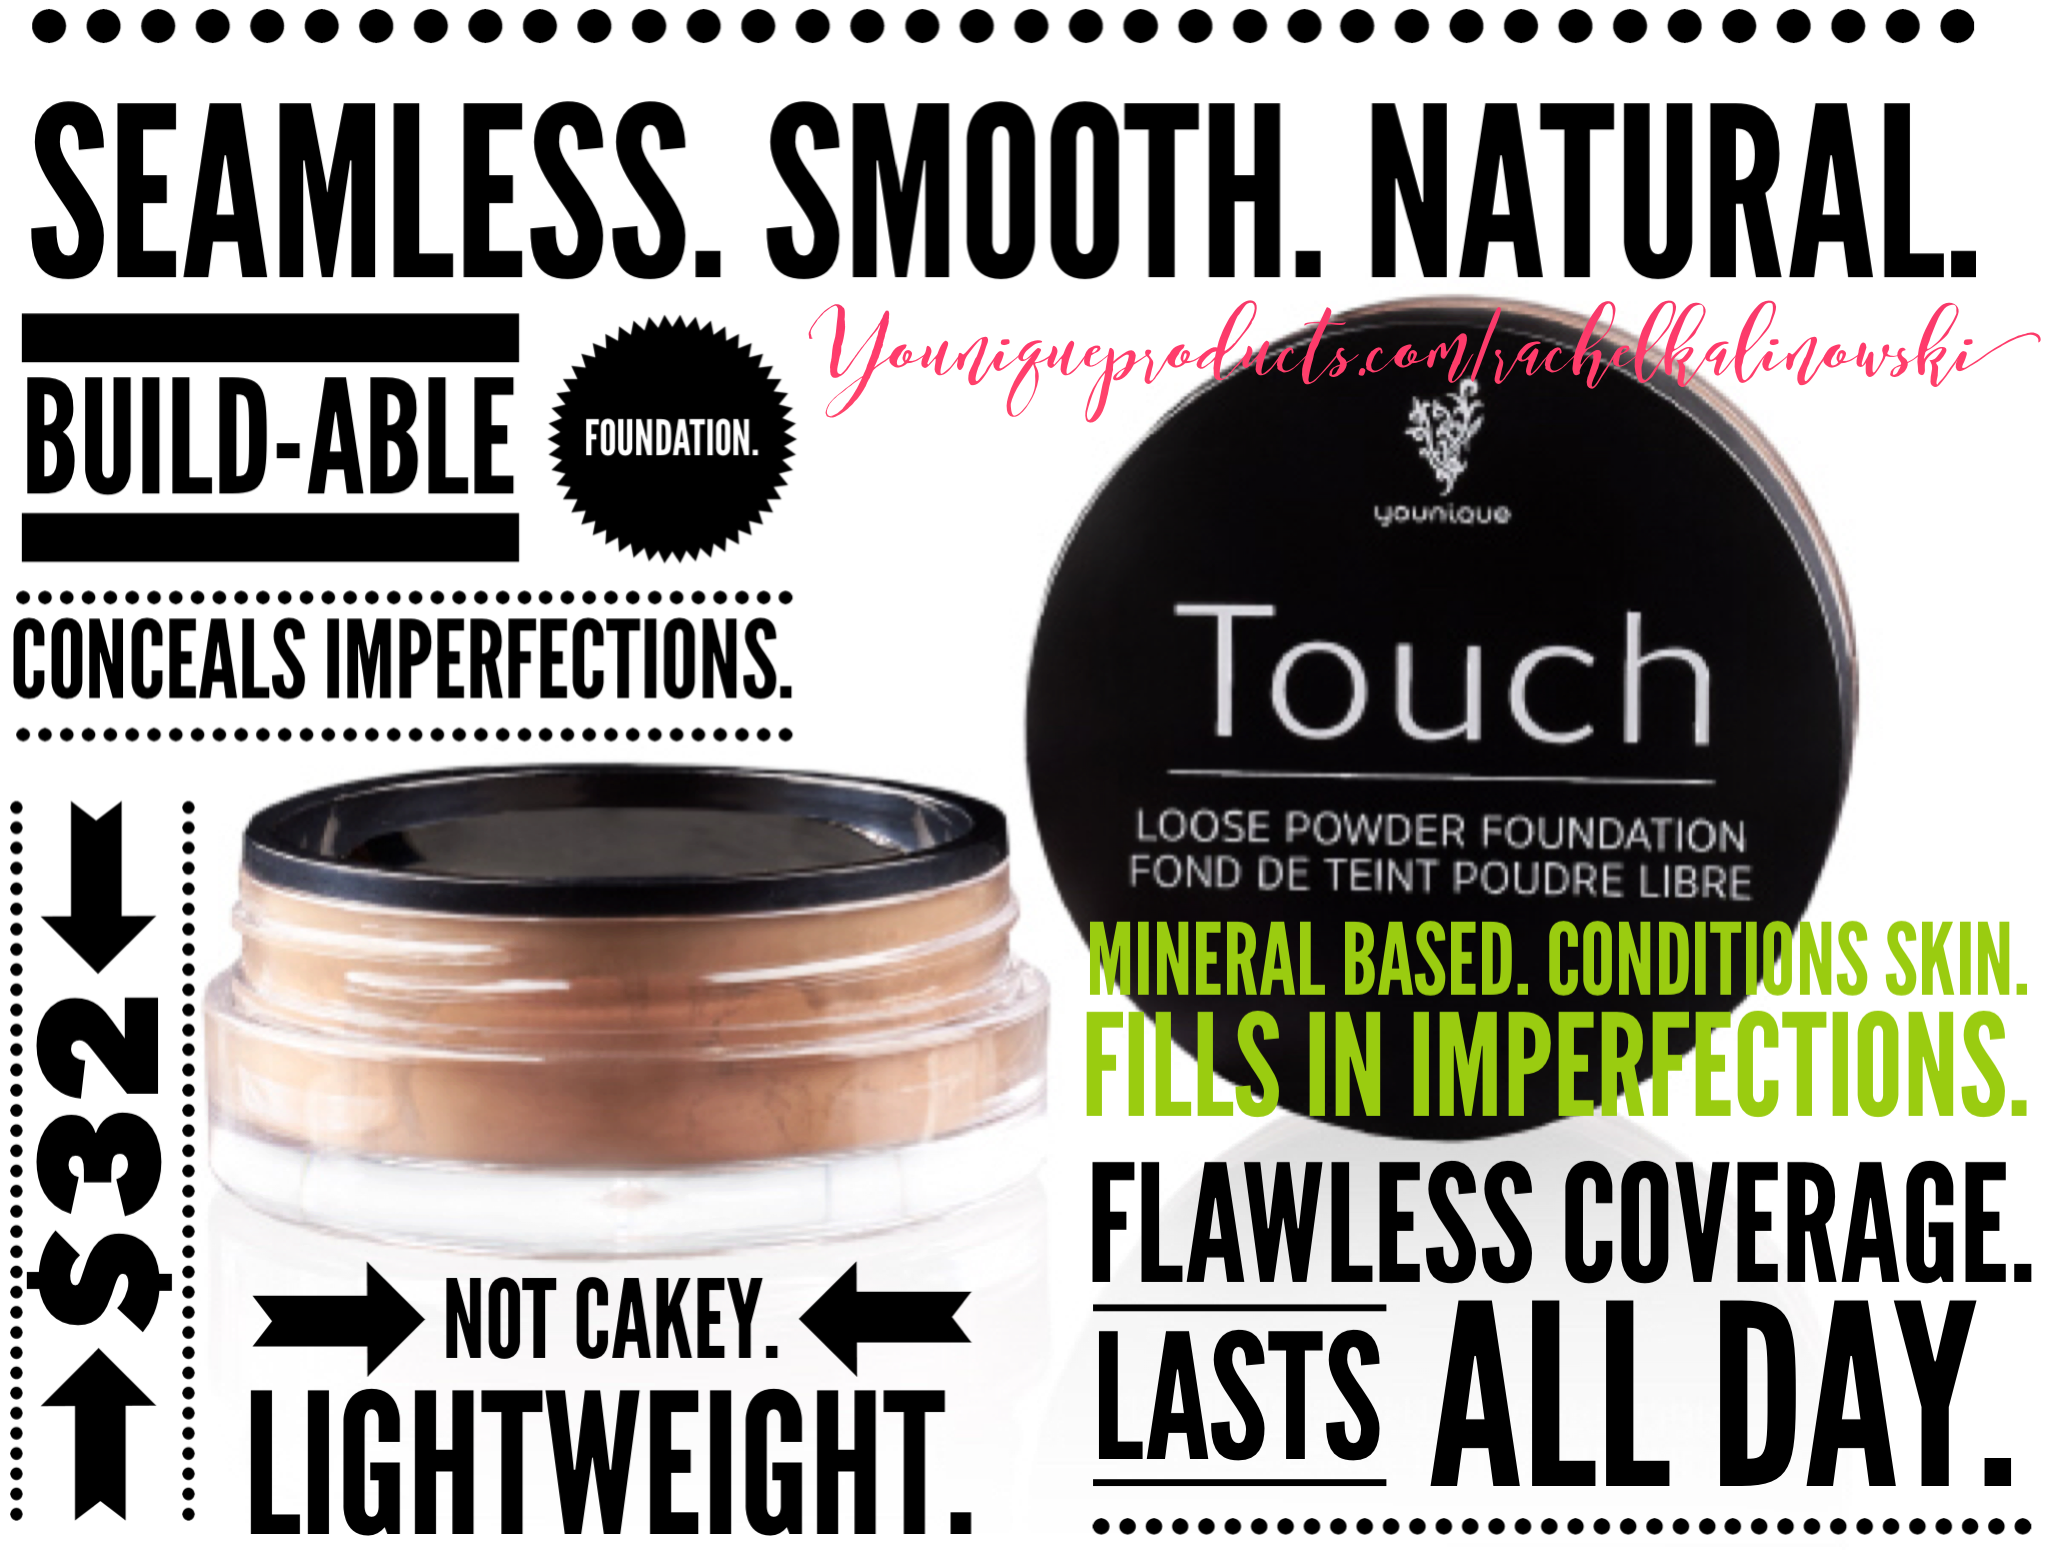 Younique Touch Loose Powder Foundation. Back in stock! This stuff is amazing. Seamless. Smooth. Natural. Get your lightweight powder coverage. $32 USD. Www.youniqueproducts.com/rachelkalinowski